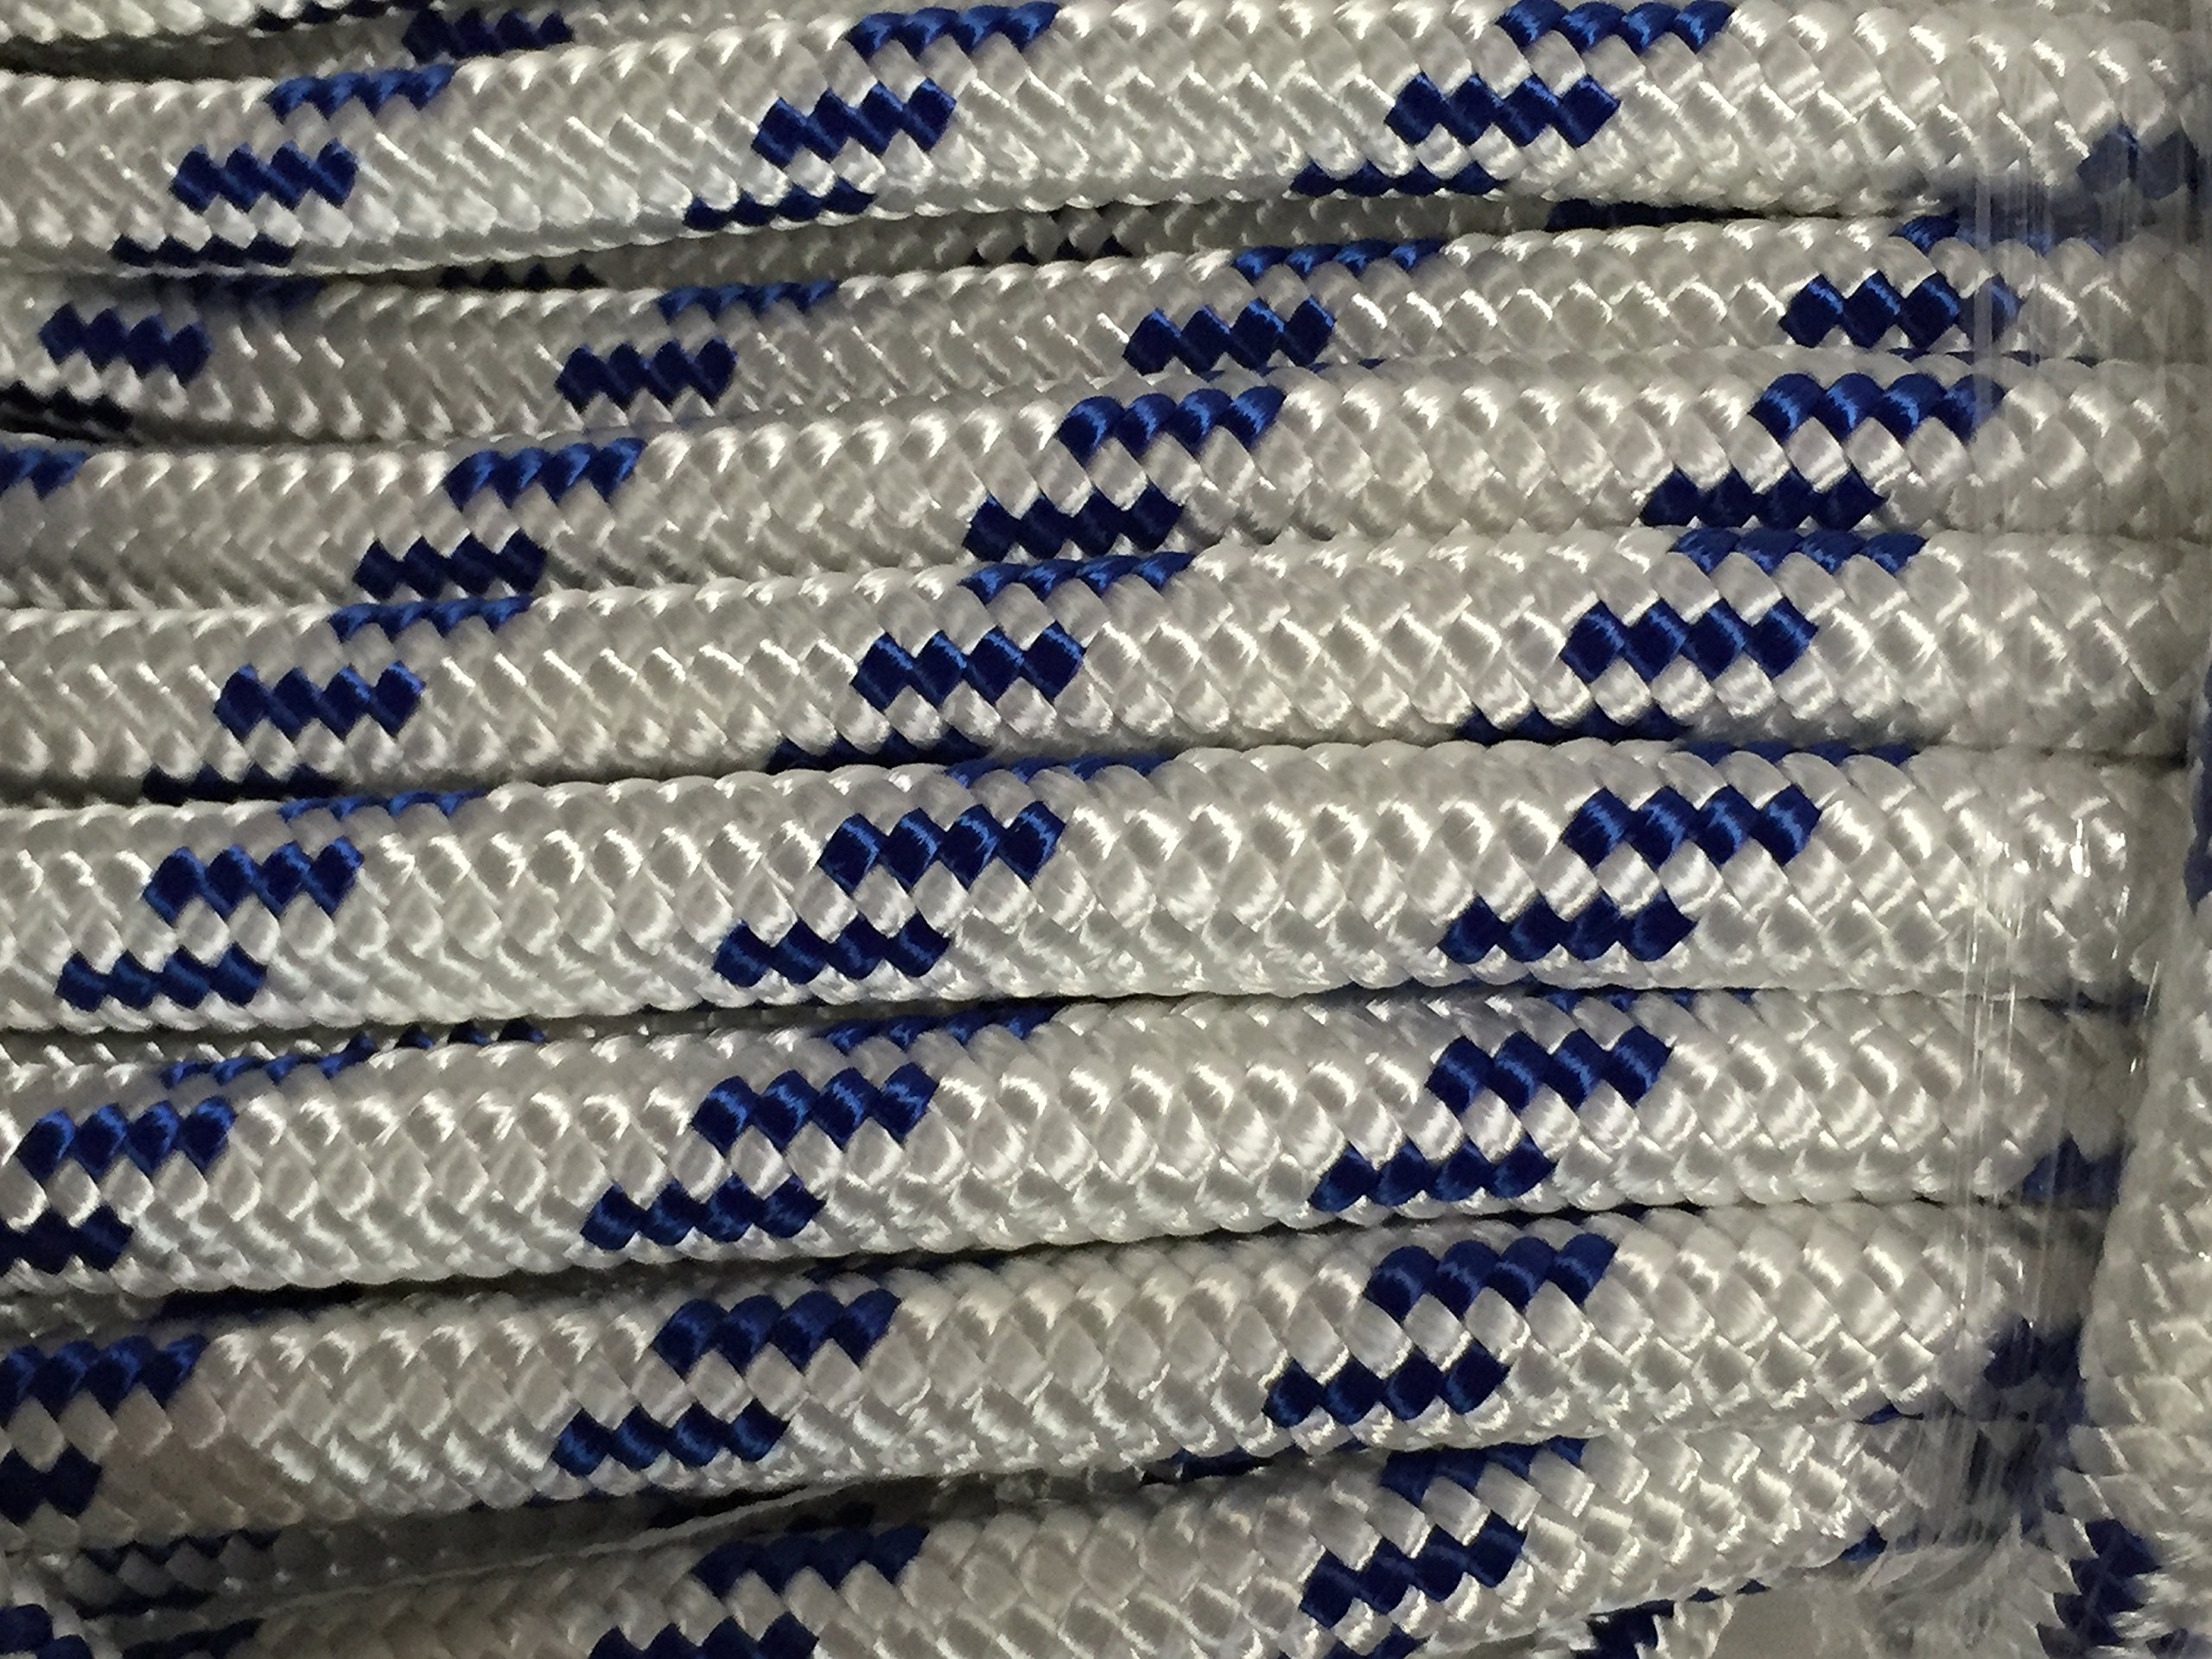 3/4'' X 200' Double Braid Polyester Arborist Bull Rope, White/blue by Blue Ox Rope (Image #1)